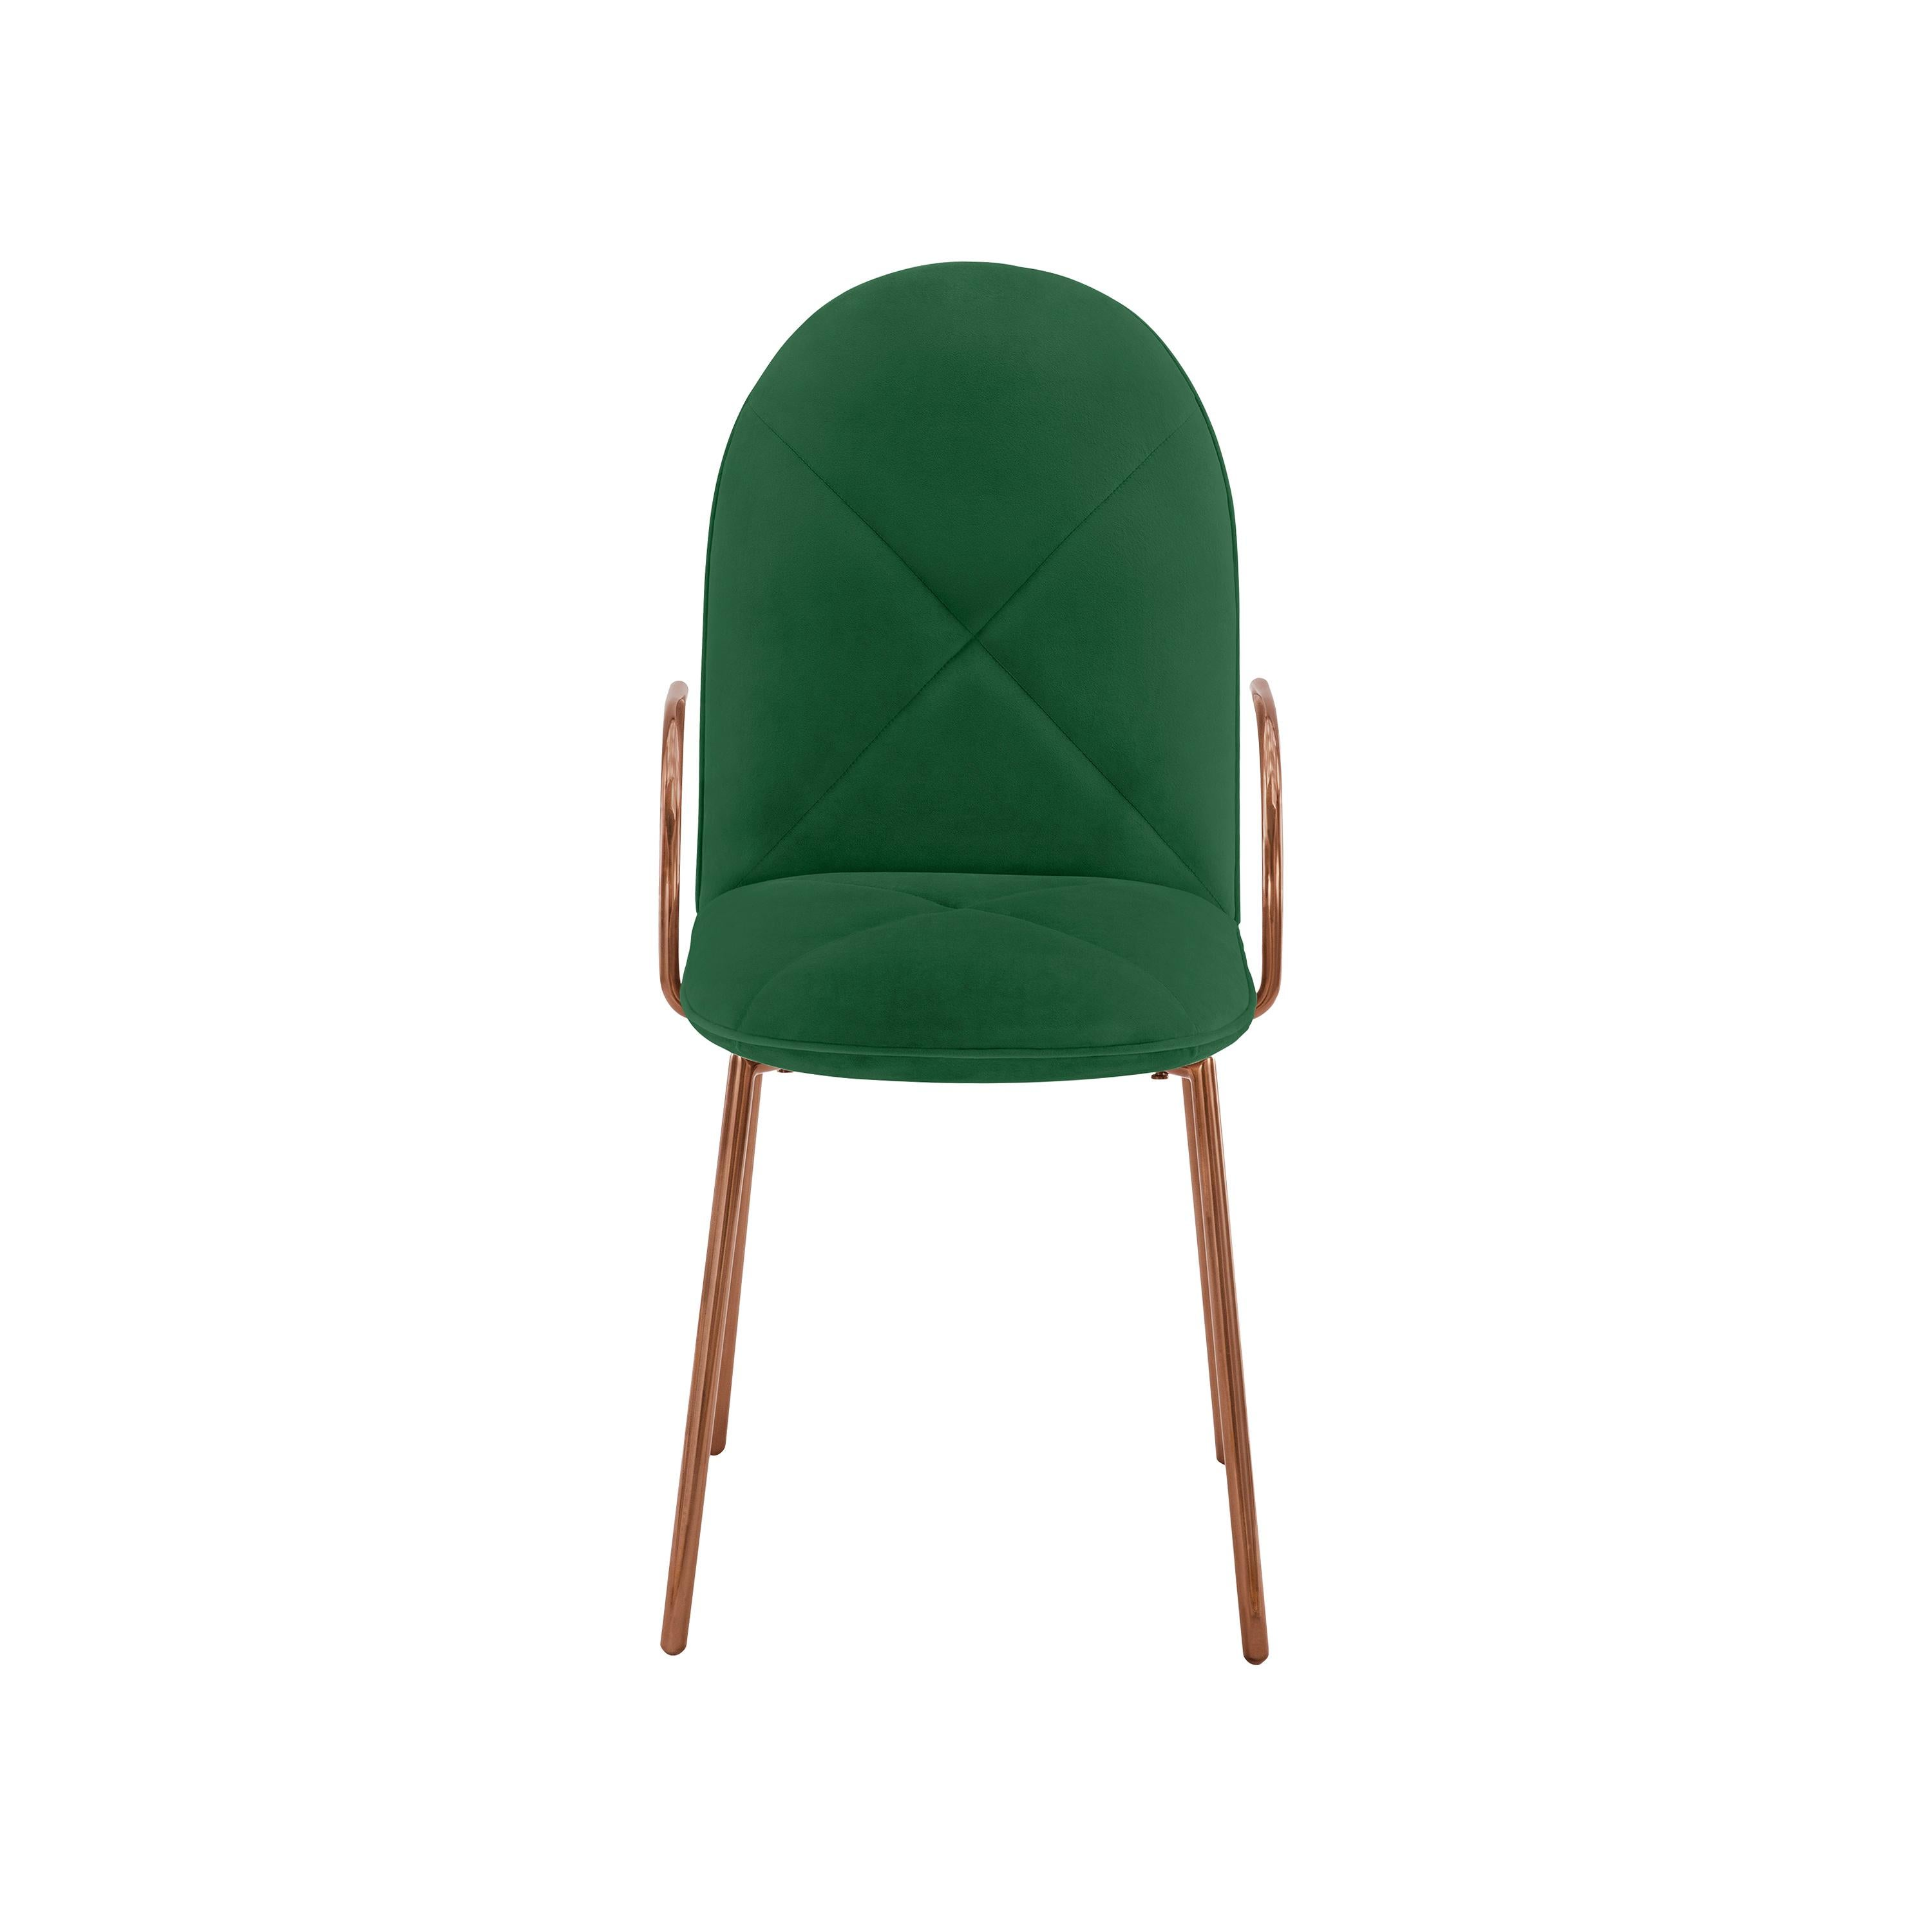 Orion Dining Chair with Plush Green Velvet and Rose Gold Arms by Nika Zupanc